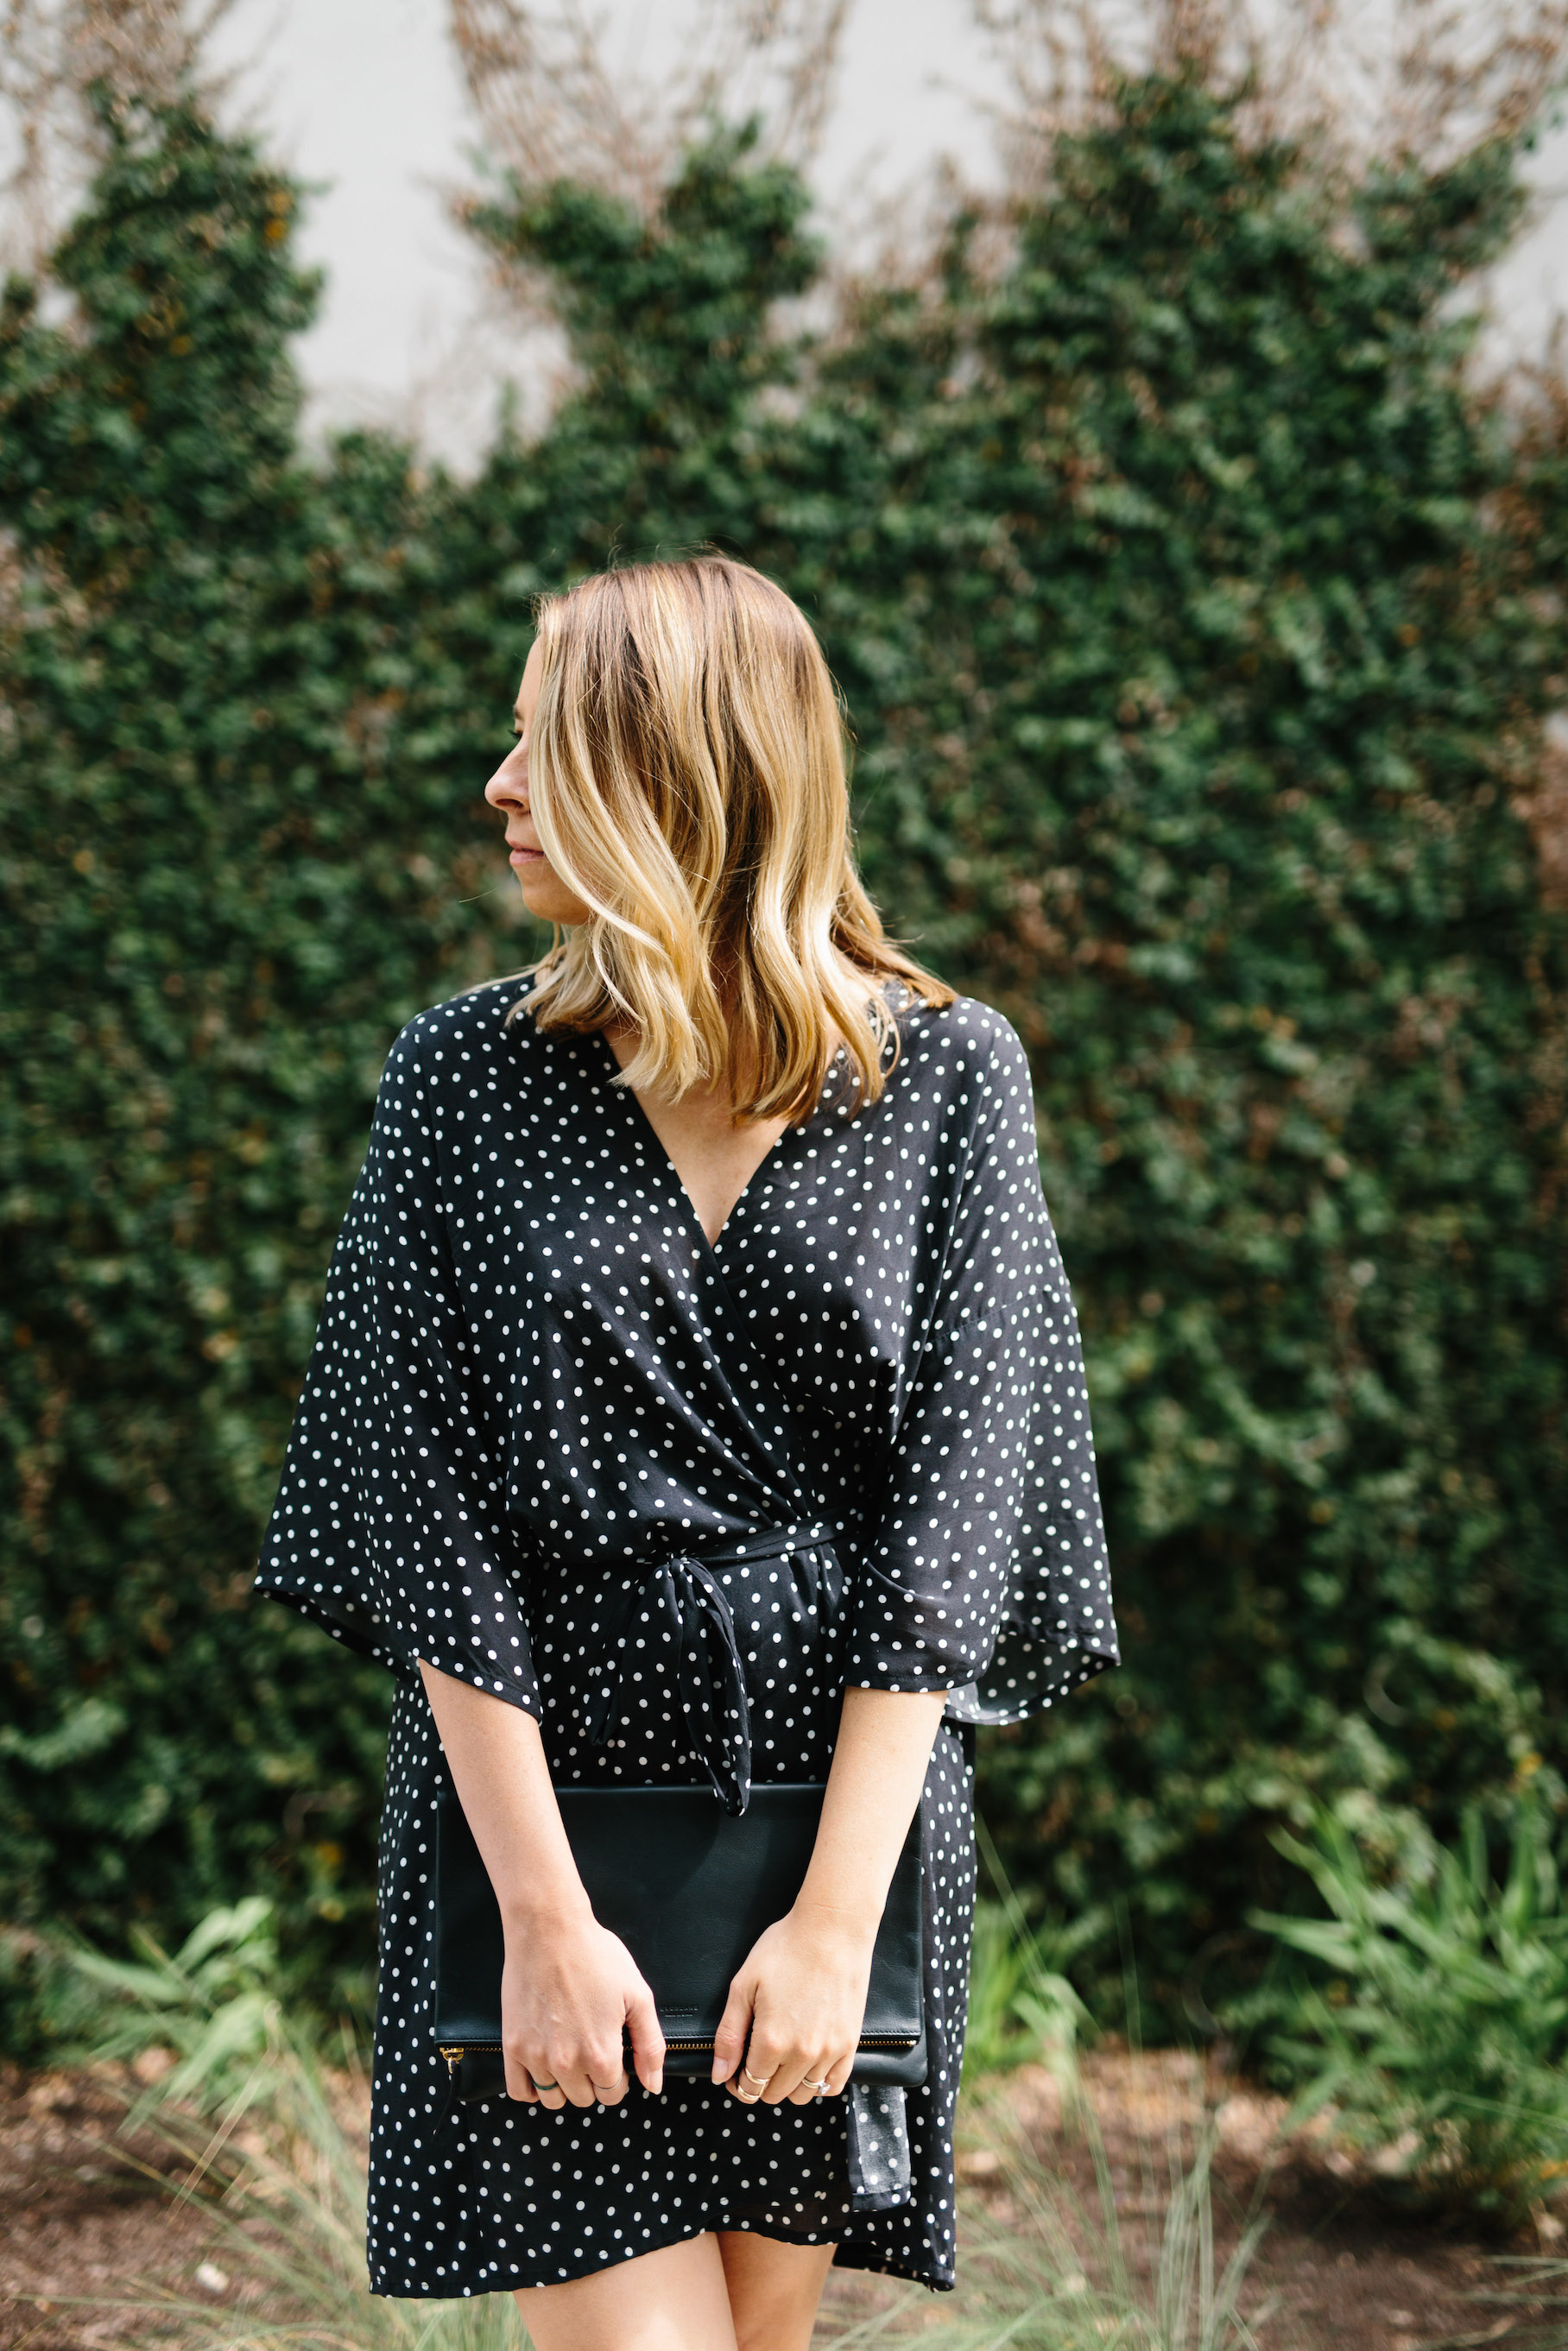 Bell sleeve polka dot dress // A Week Of Summertime Minimalist Outfits With Ava Darnell, Founder Of Slumlove Sweater Company on The Good Trade